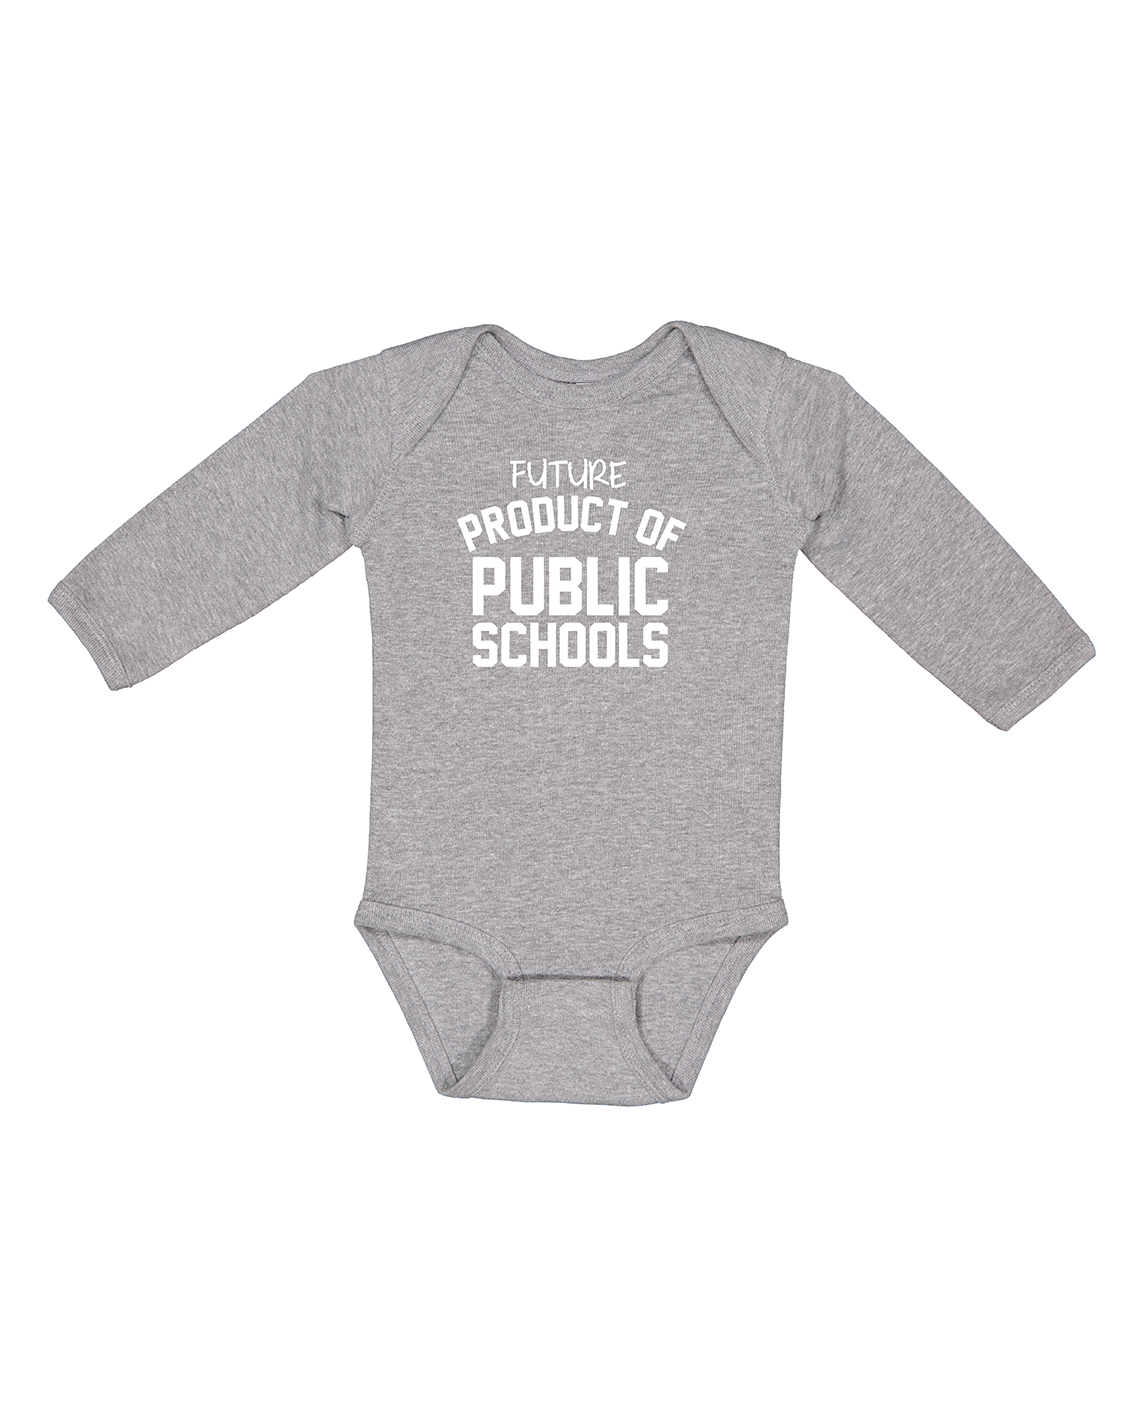 Future Product of Public Schools Long Sleeve Onesie - Grey - Originalitees